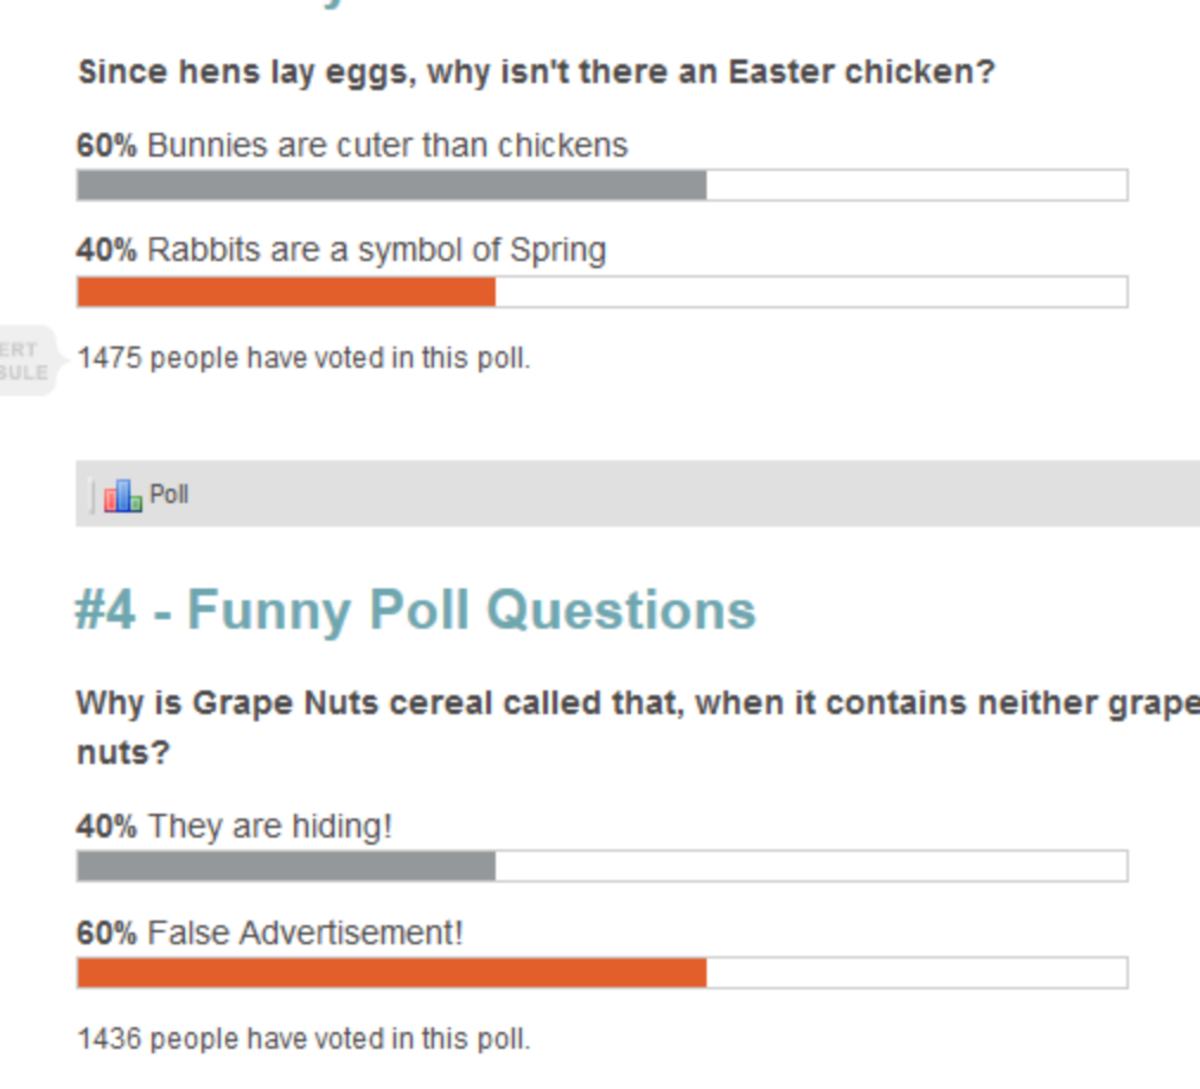 Quiz: Funny Poll Questions